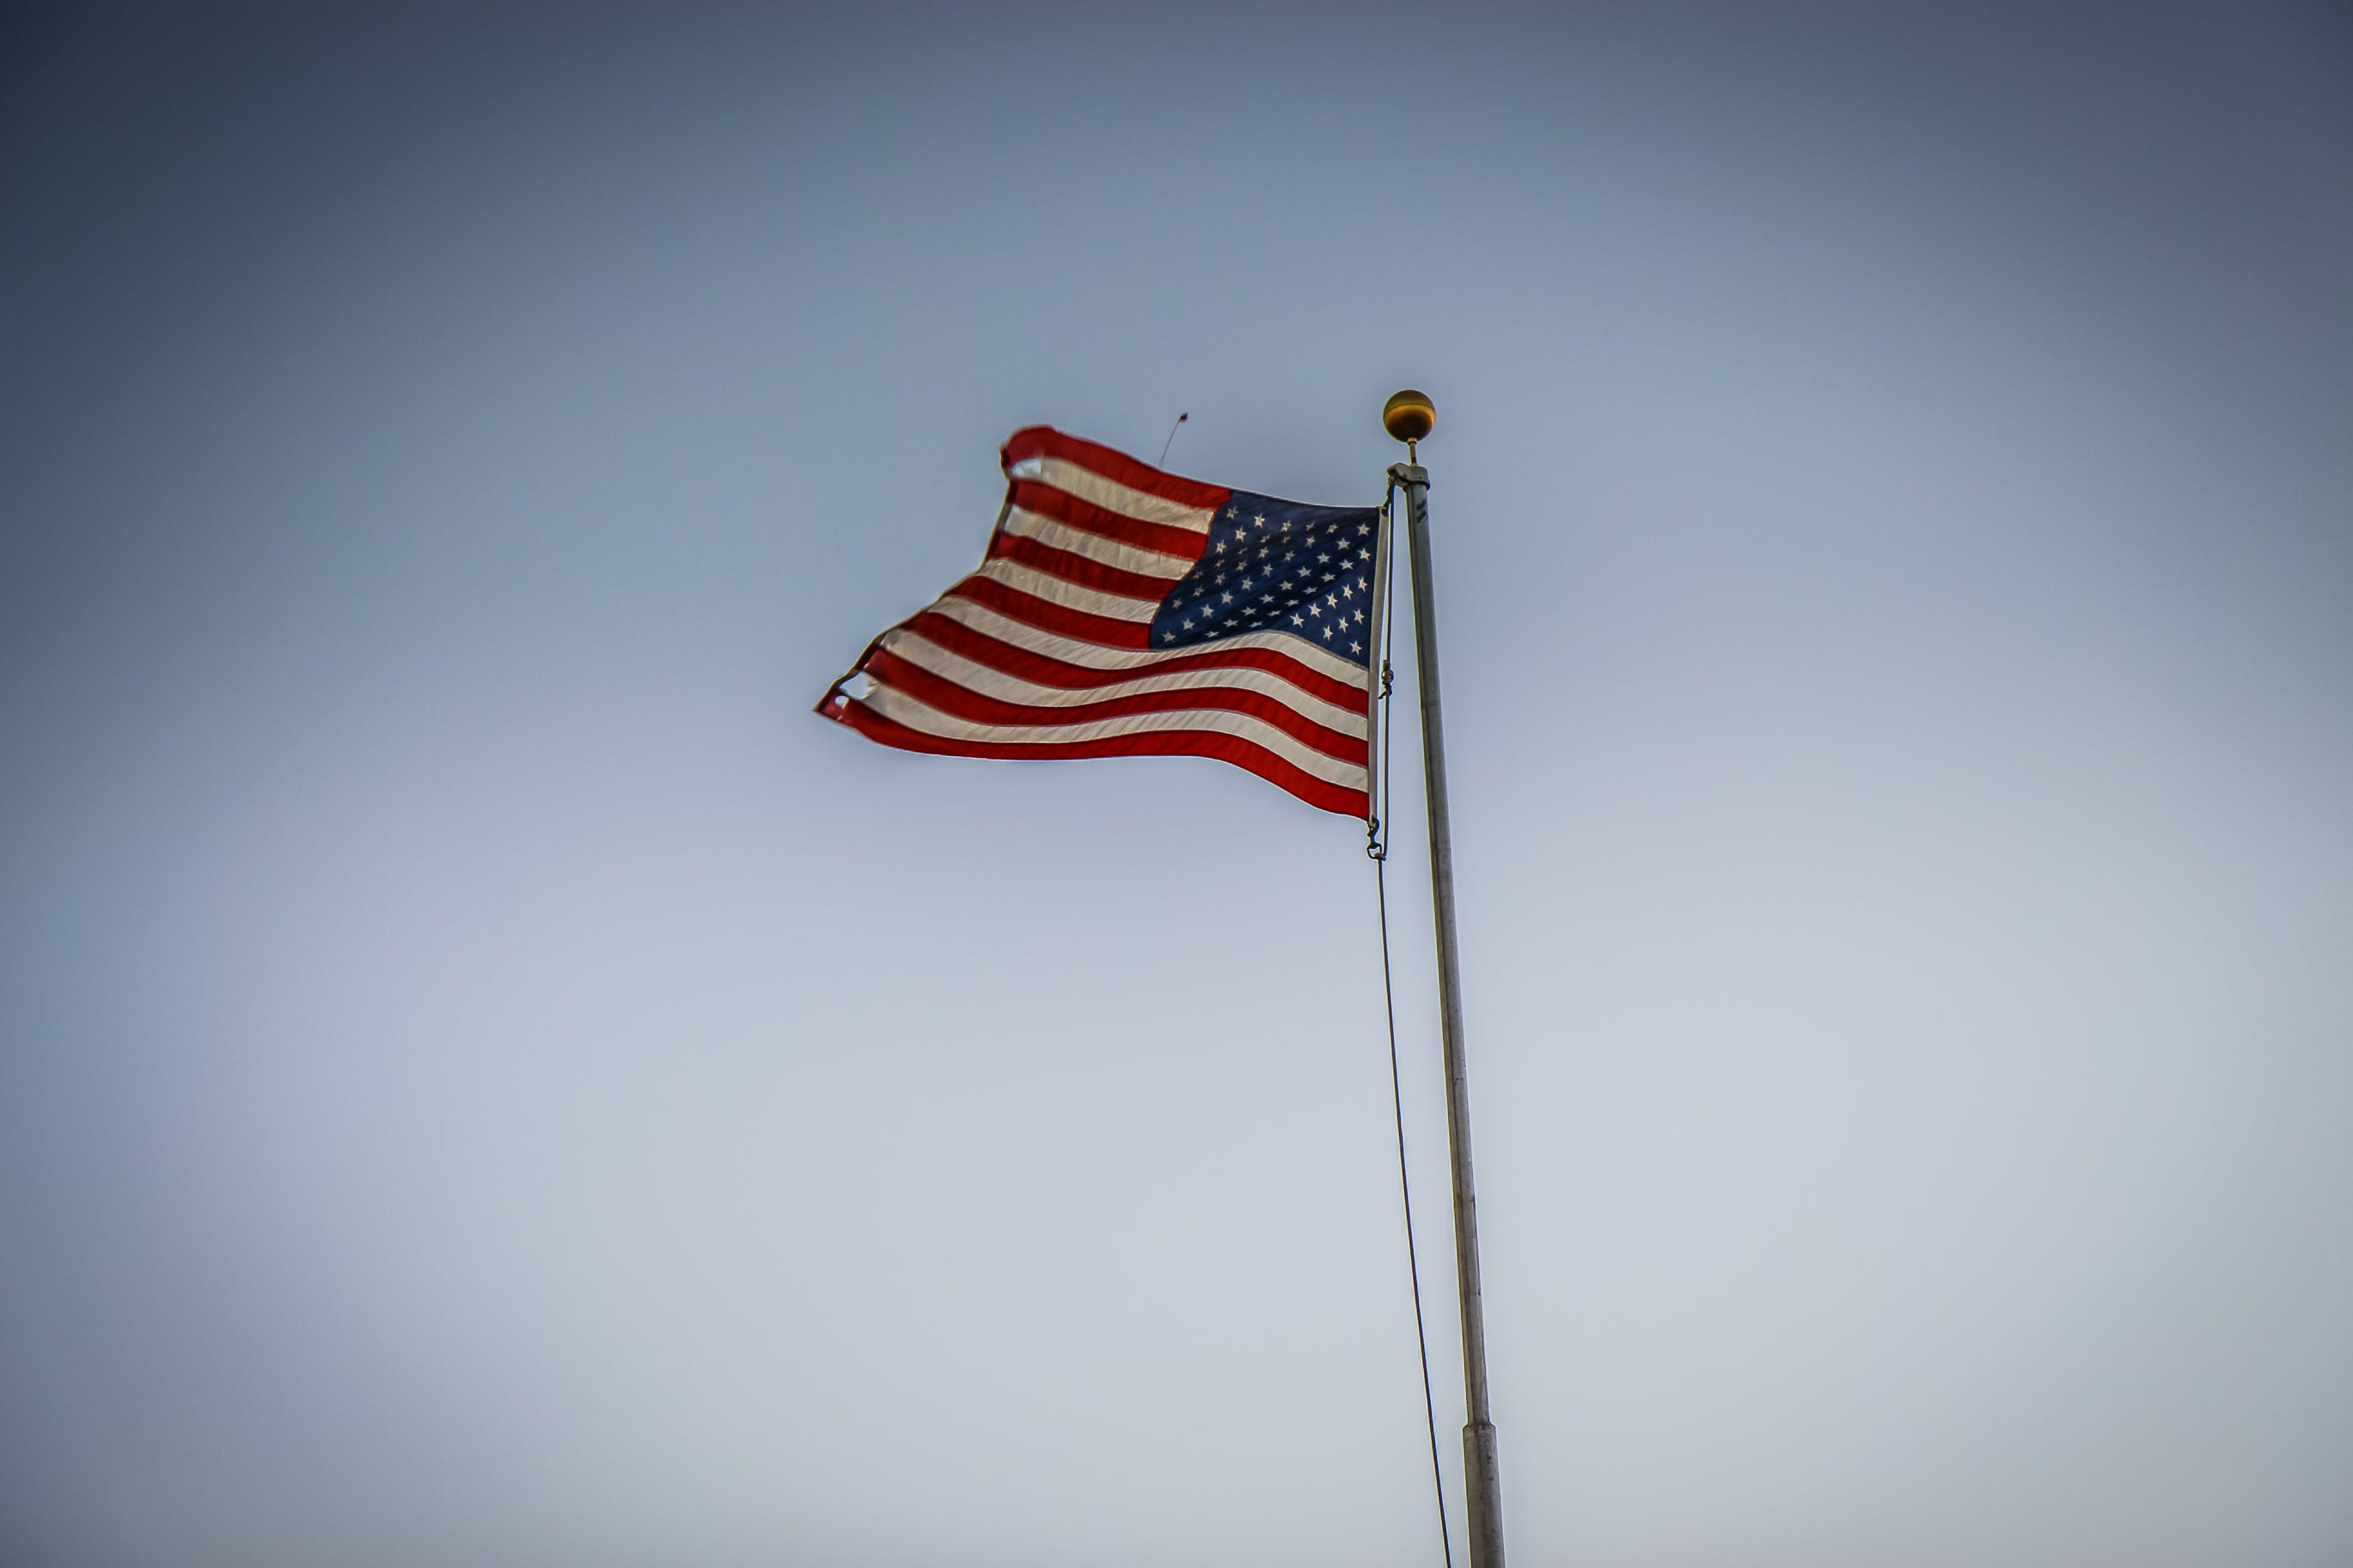 U.s.a. Flag on Pole